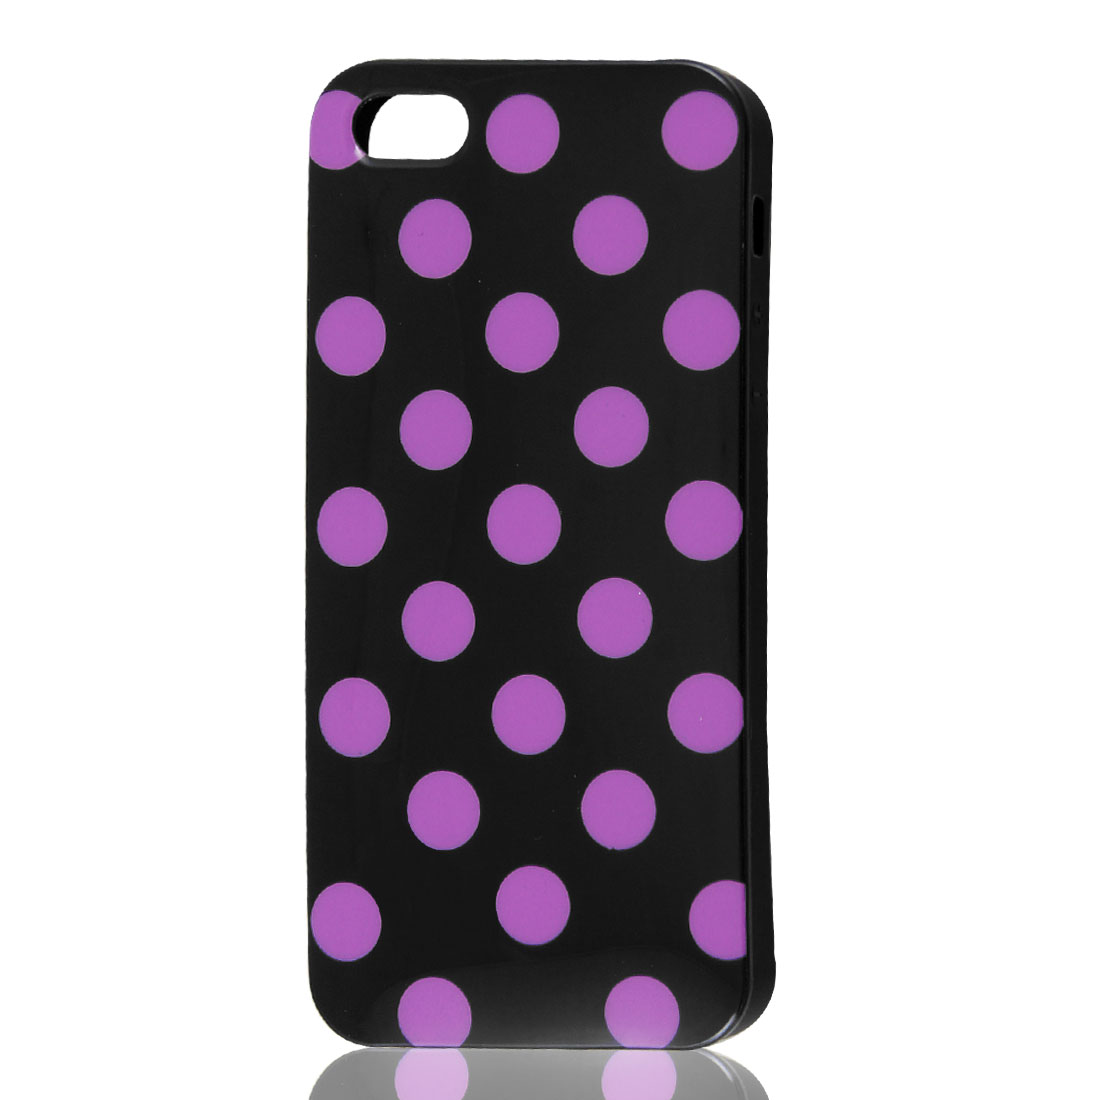 Purple Polka Dots Black Soft Plastic Case Cover for Apple iPhone 5 5G